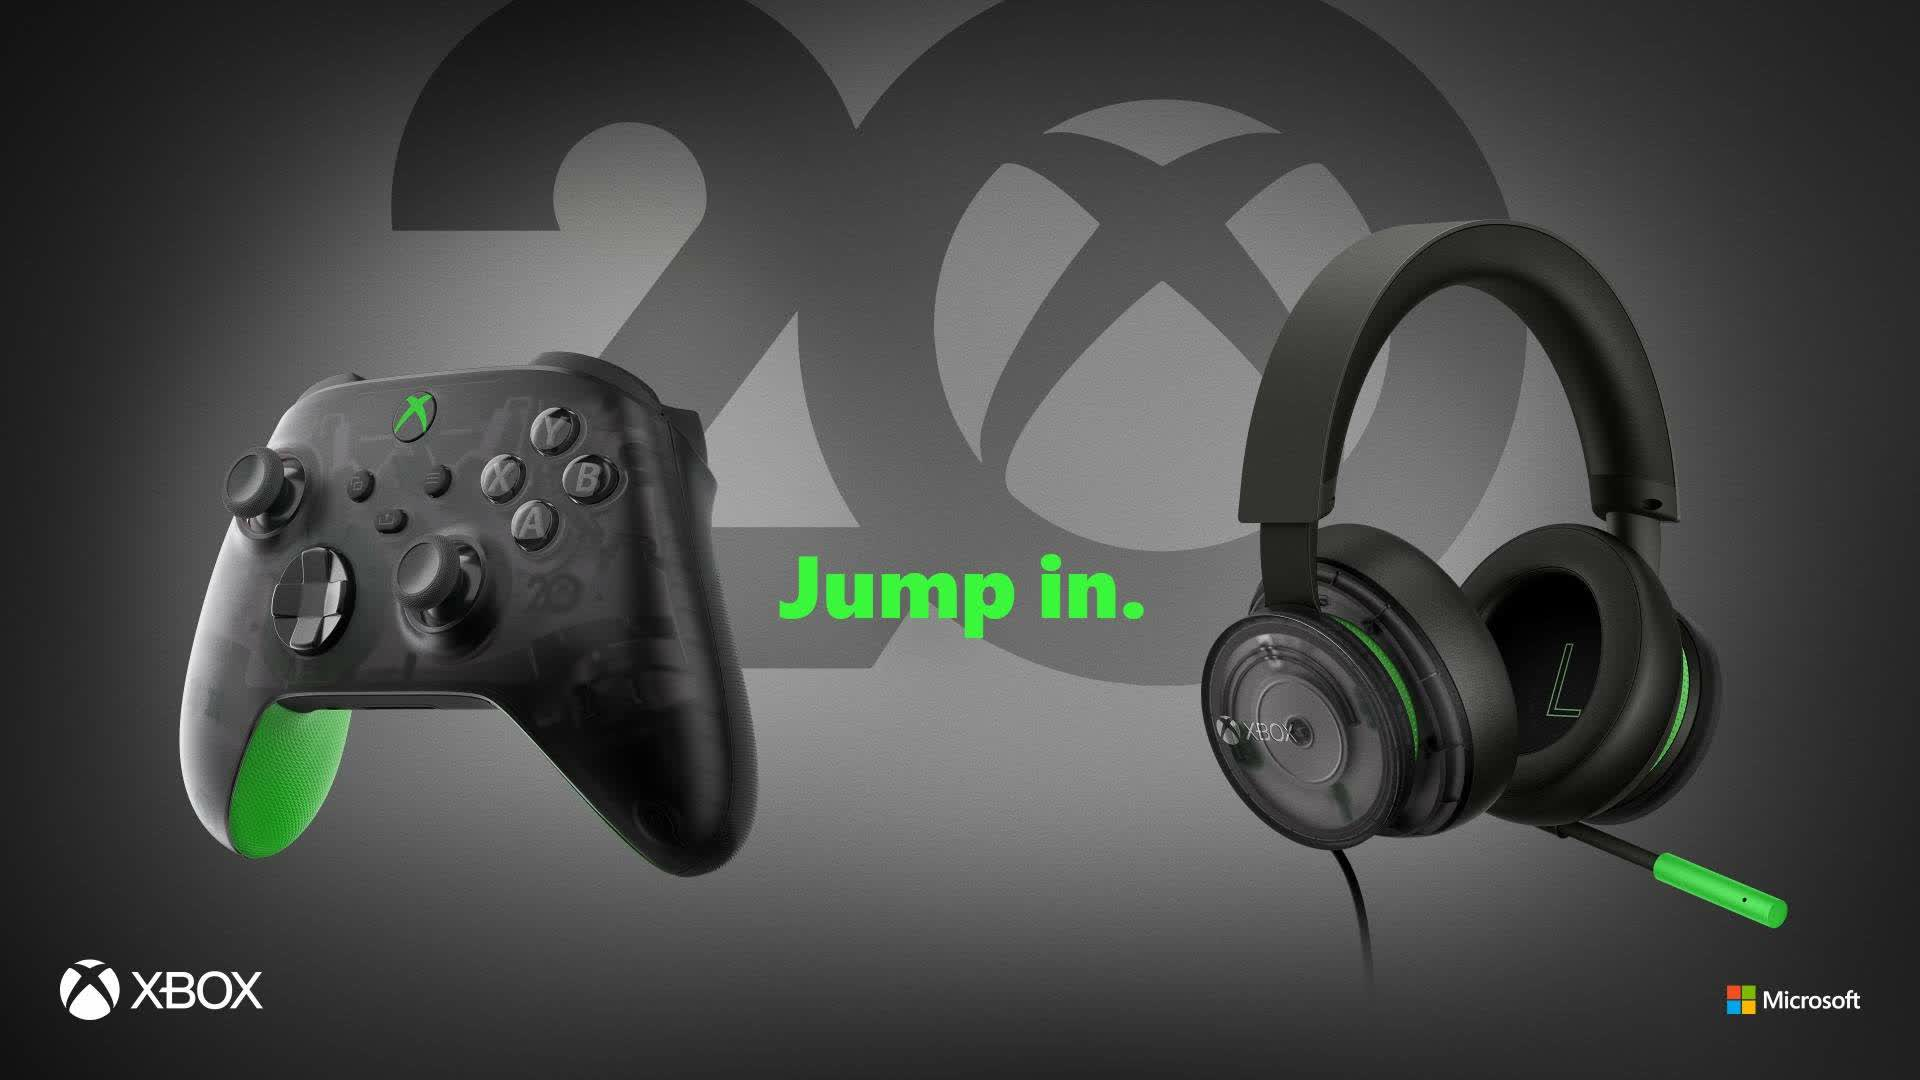 Xbox celebrates 20th anniversary with special edition hardware and merchandise